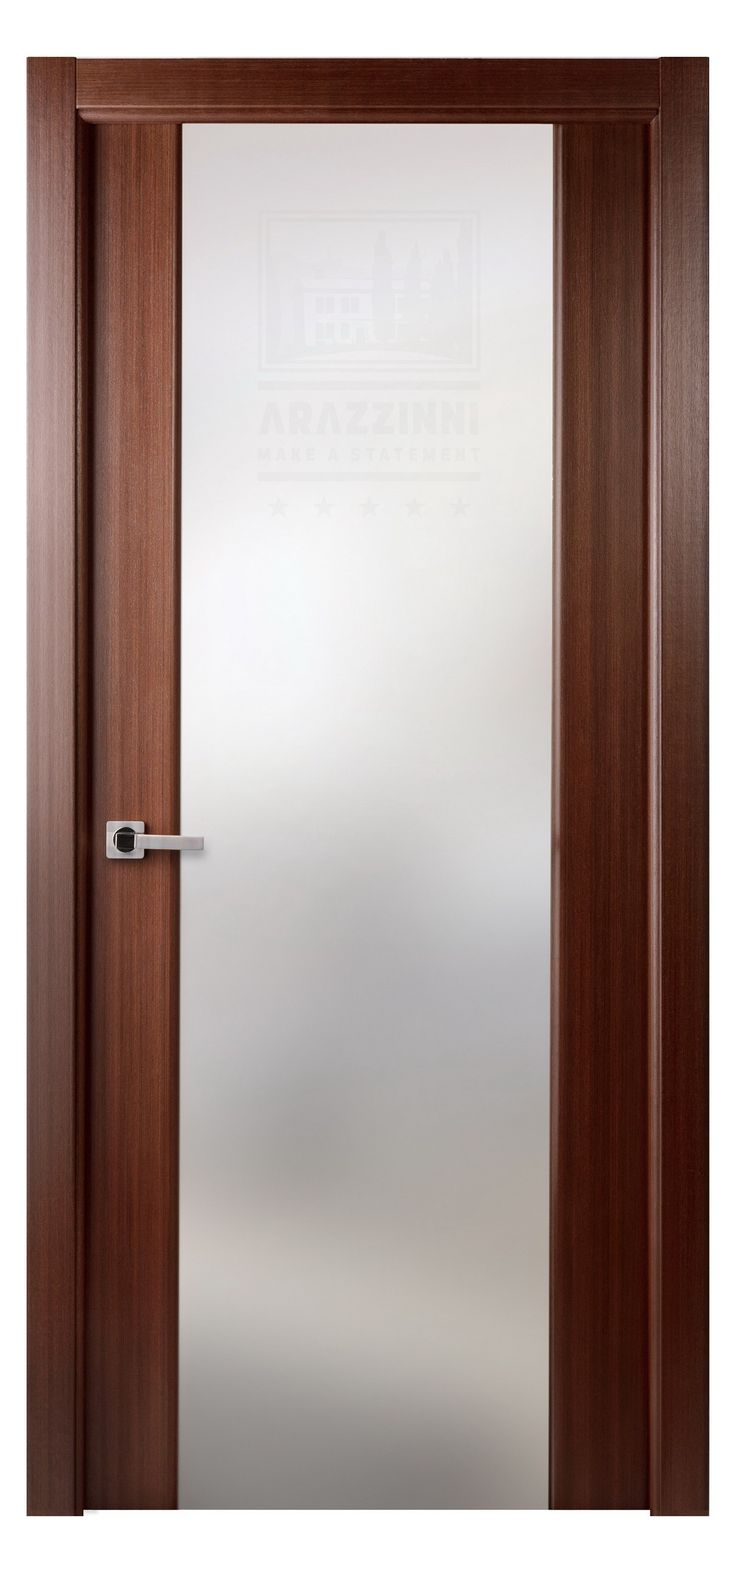 15 best modern interior doors images on pinterest modern for Wood veneer interior doors